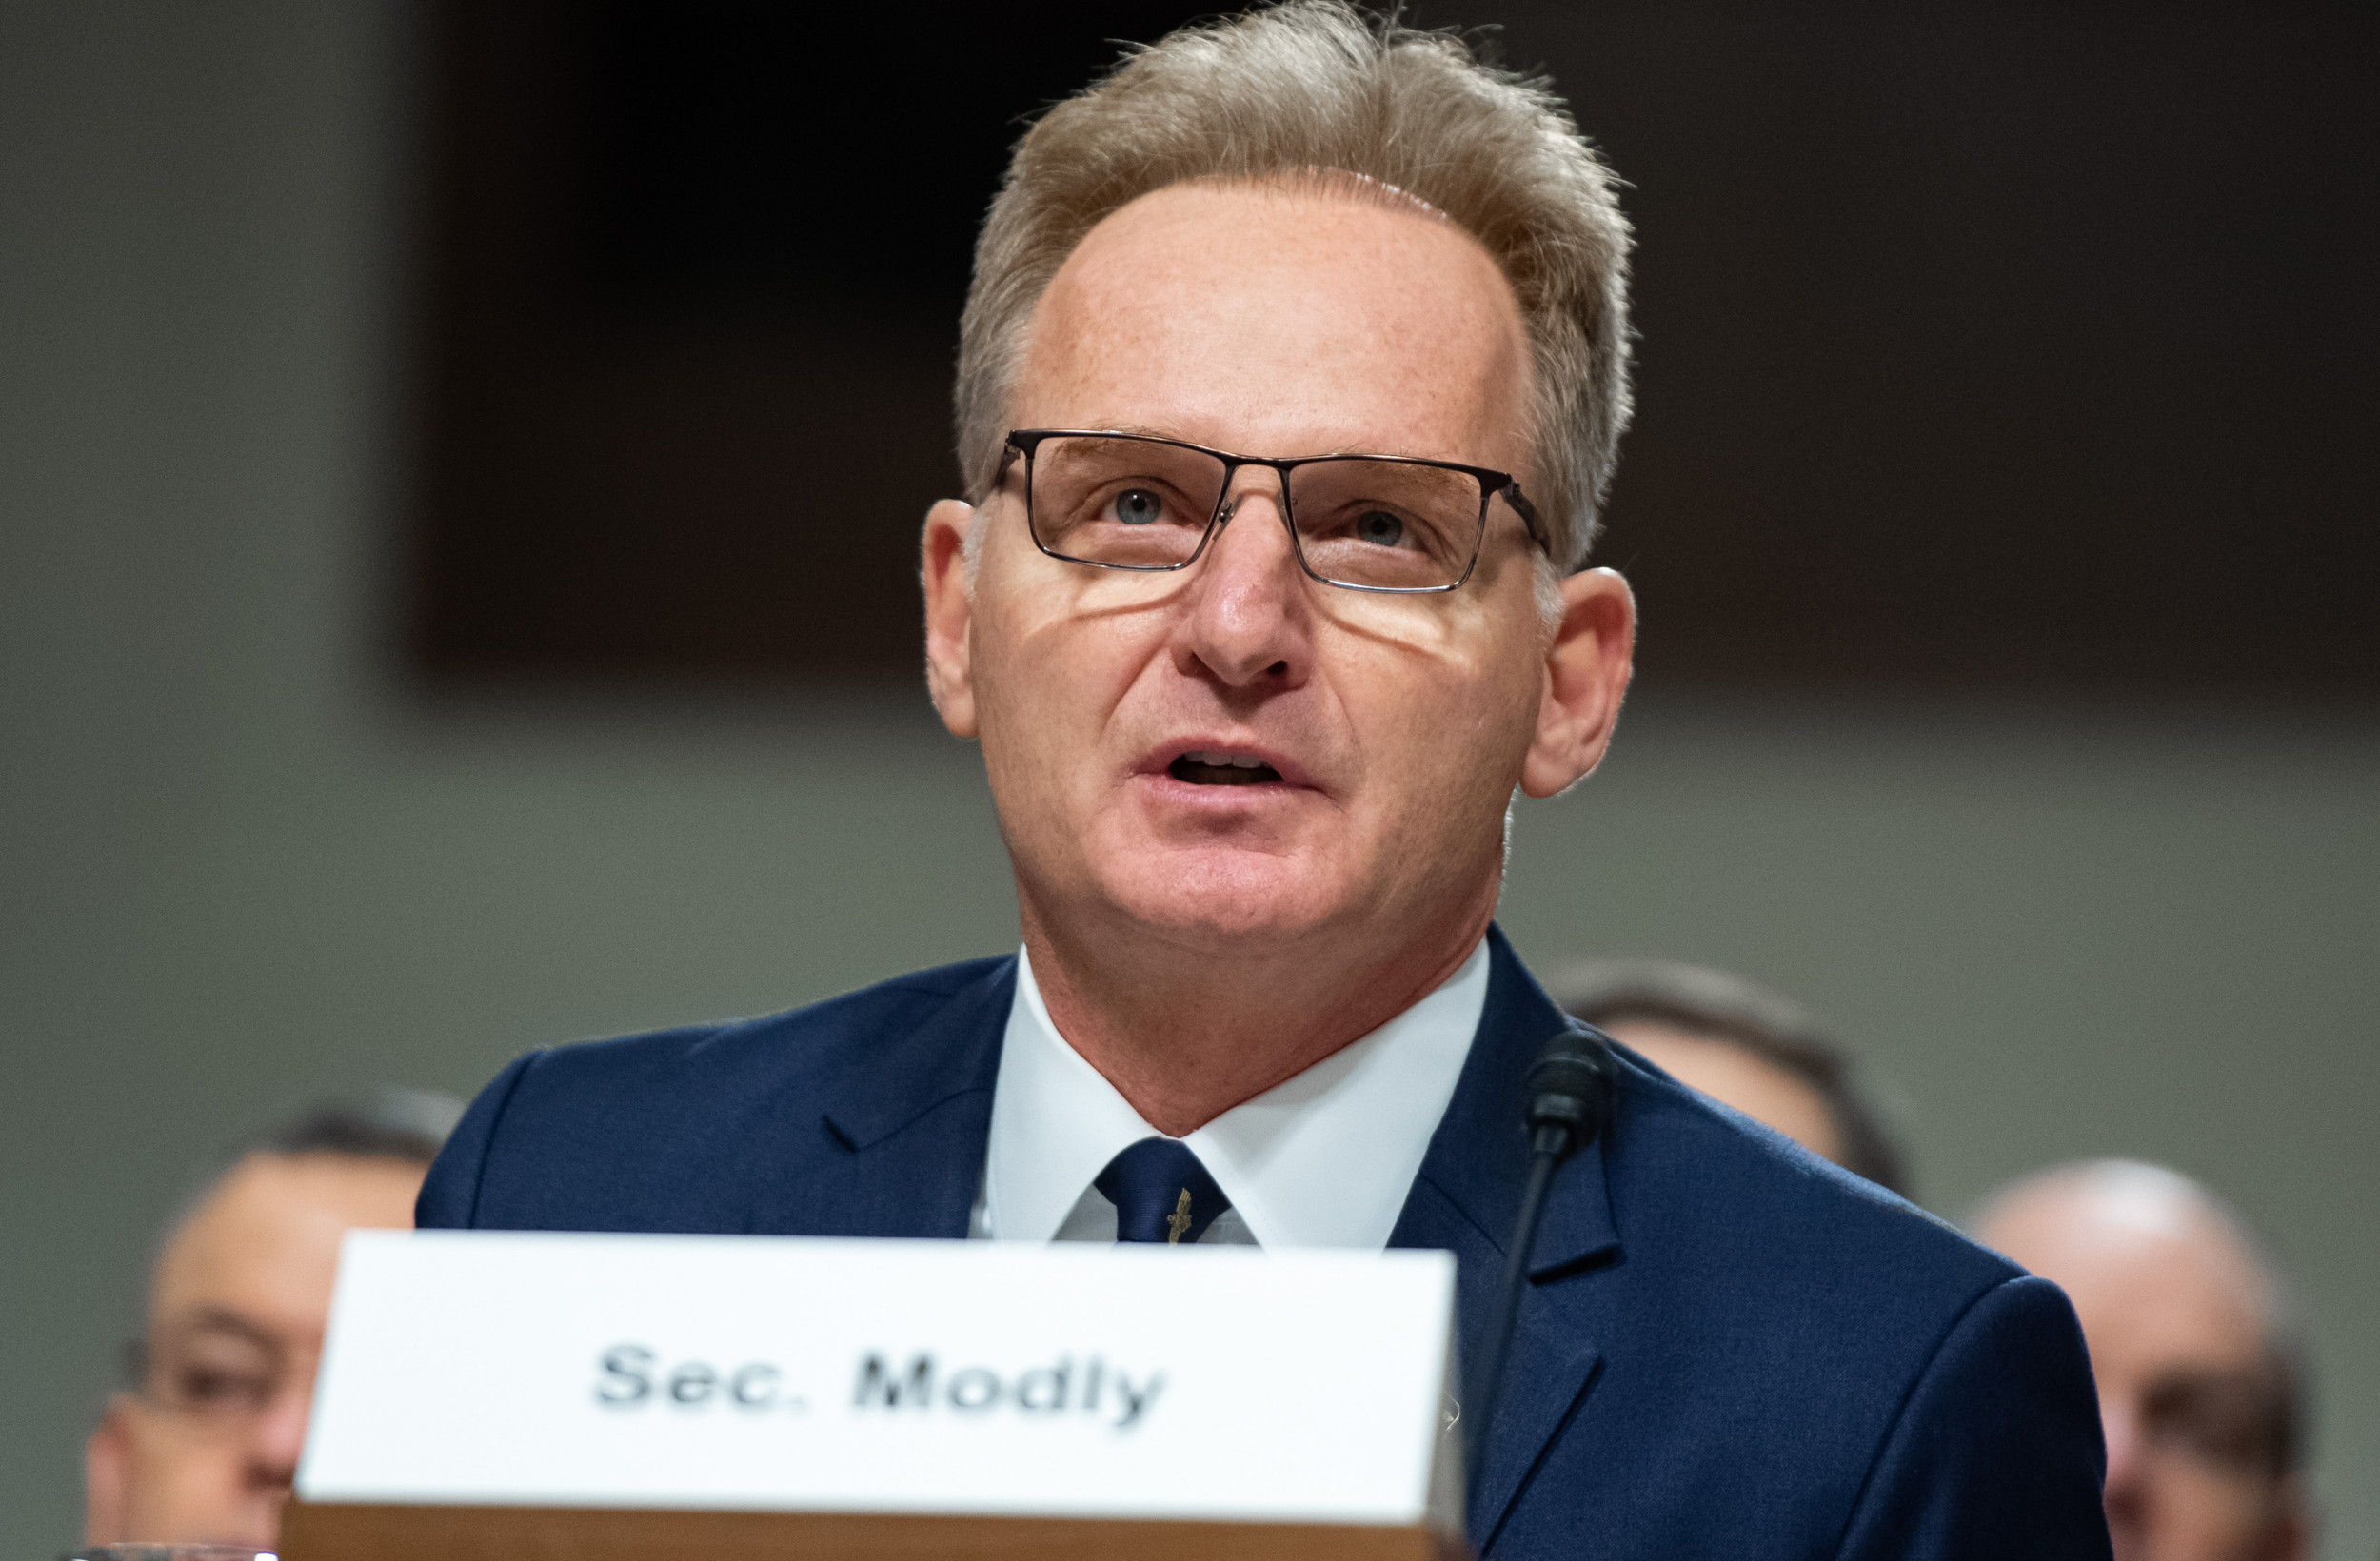 thomas modly resignation navy secretary